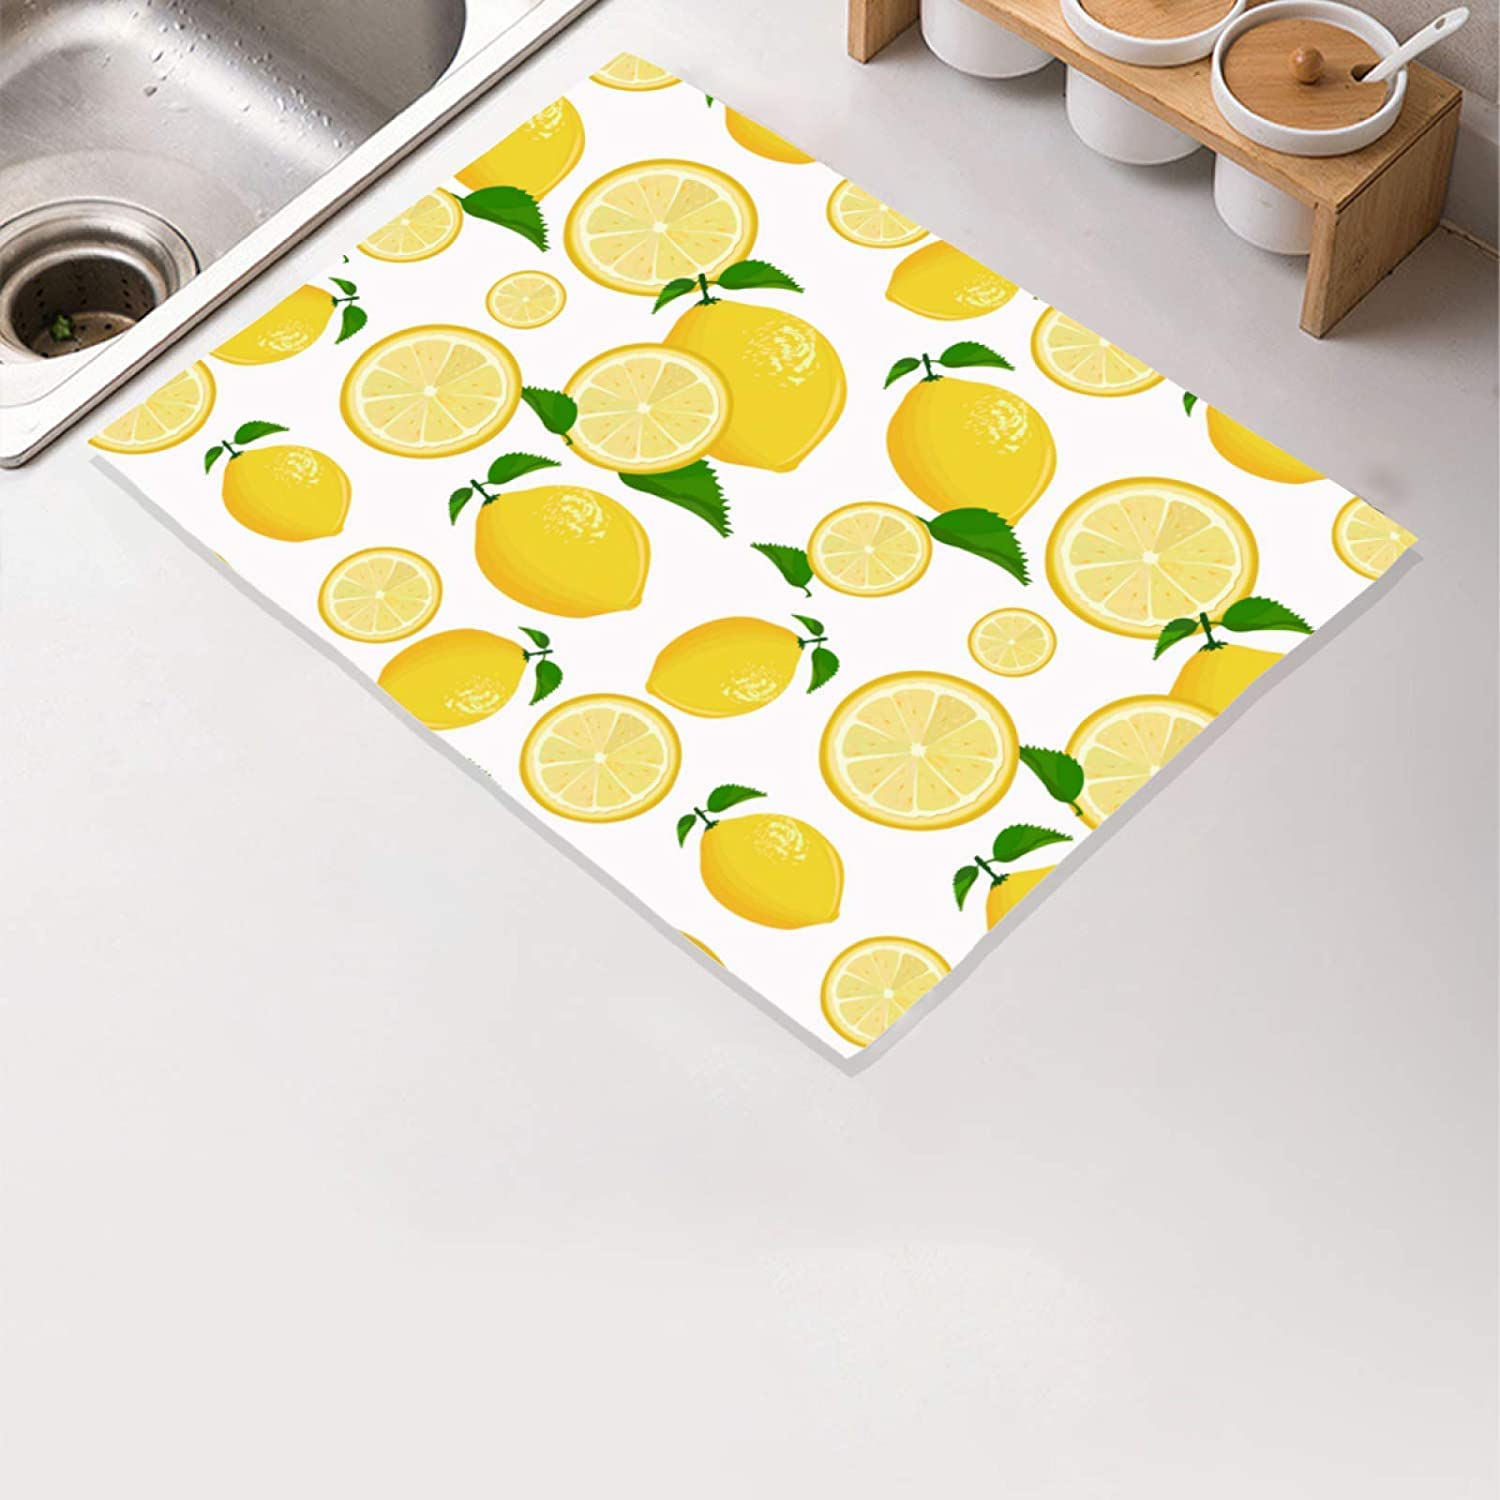 Lemon Yellow Dish Drying Mat Lemon Slices Lime Fruits Kitchen Counter Drying Mat Absorbent Microfiber Dish Drying Rack Pad Reversible Dish Drainer Mats Washable Heat-resistant 16x12 inch